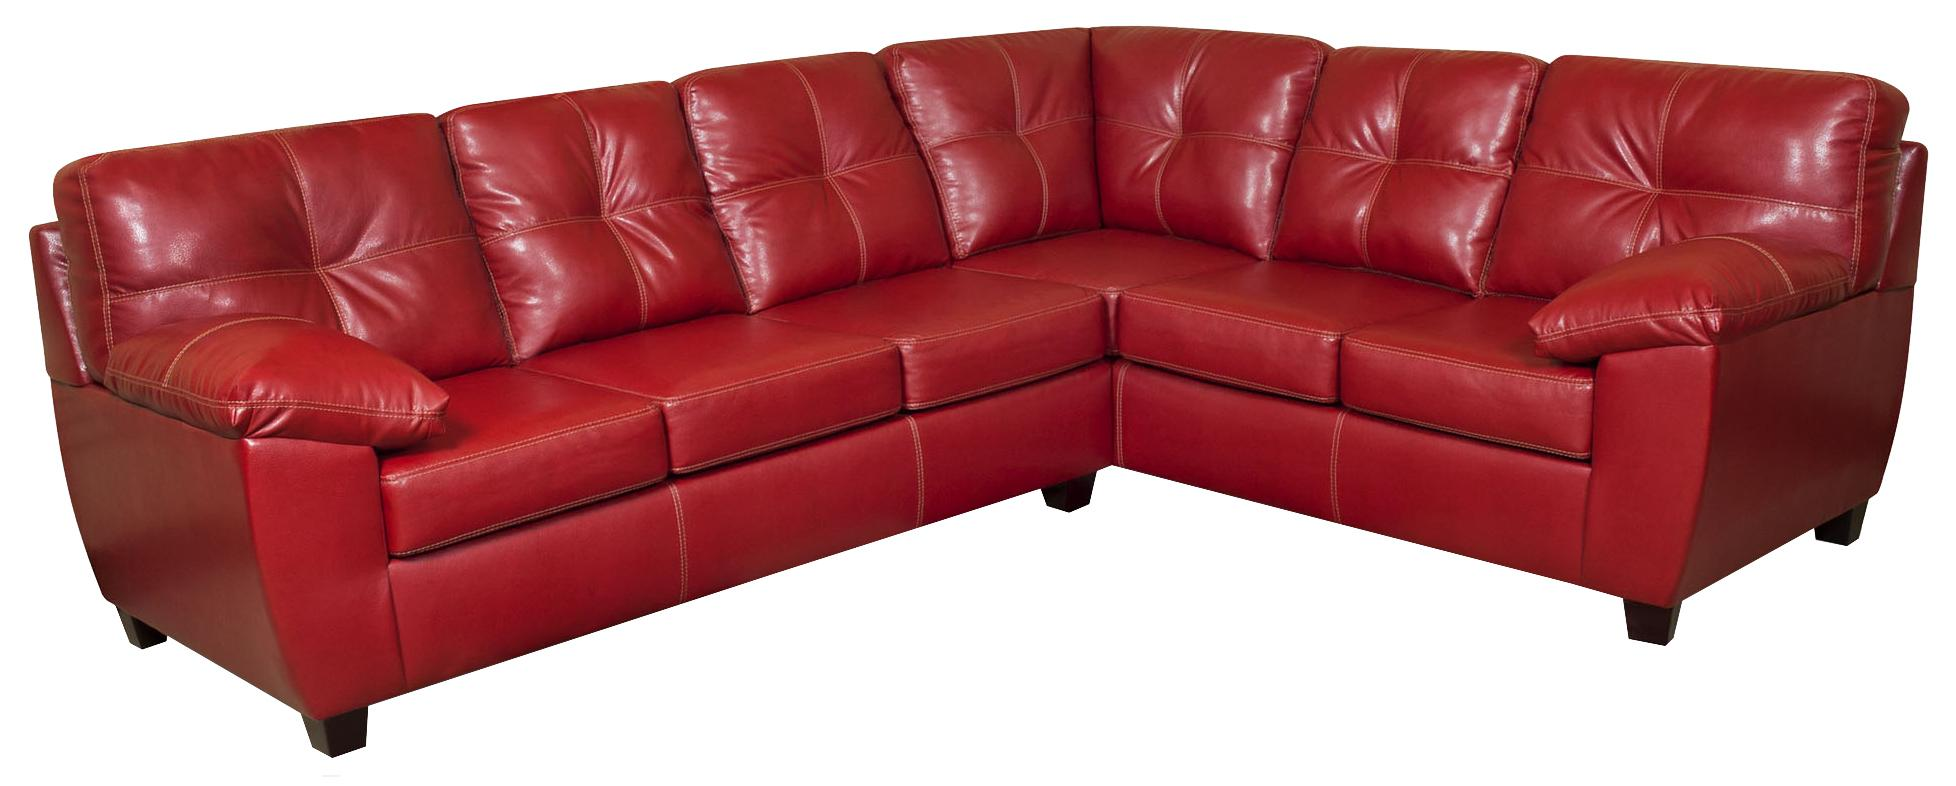 American Furniture 1470  Sectional Sofa - Item Number: 1471+1472 TC